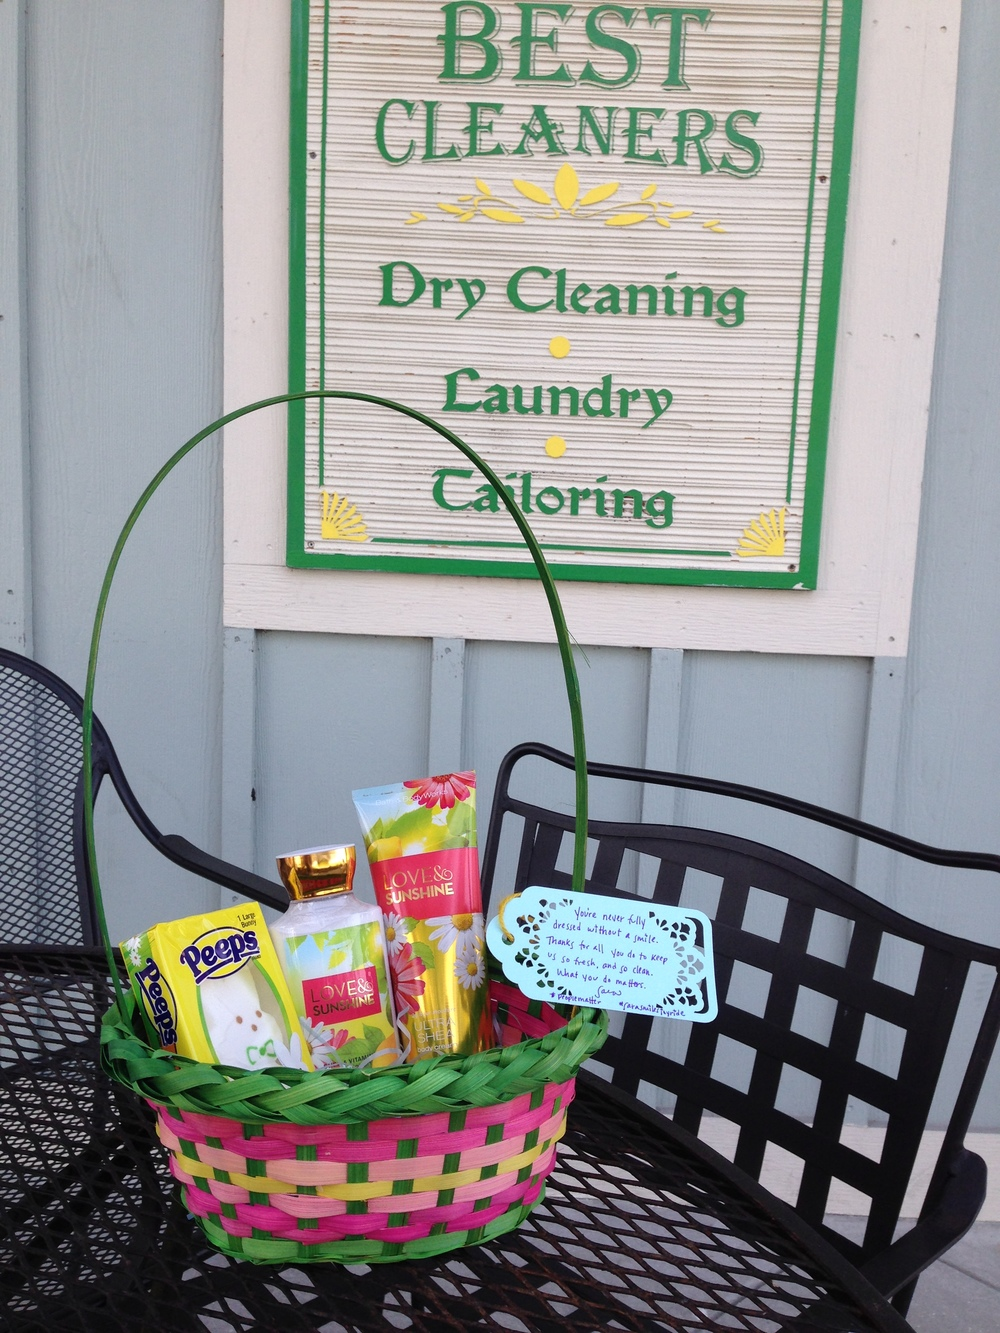 An Easter basket for the dry cleaner